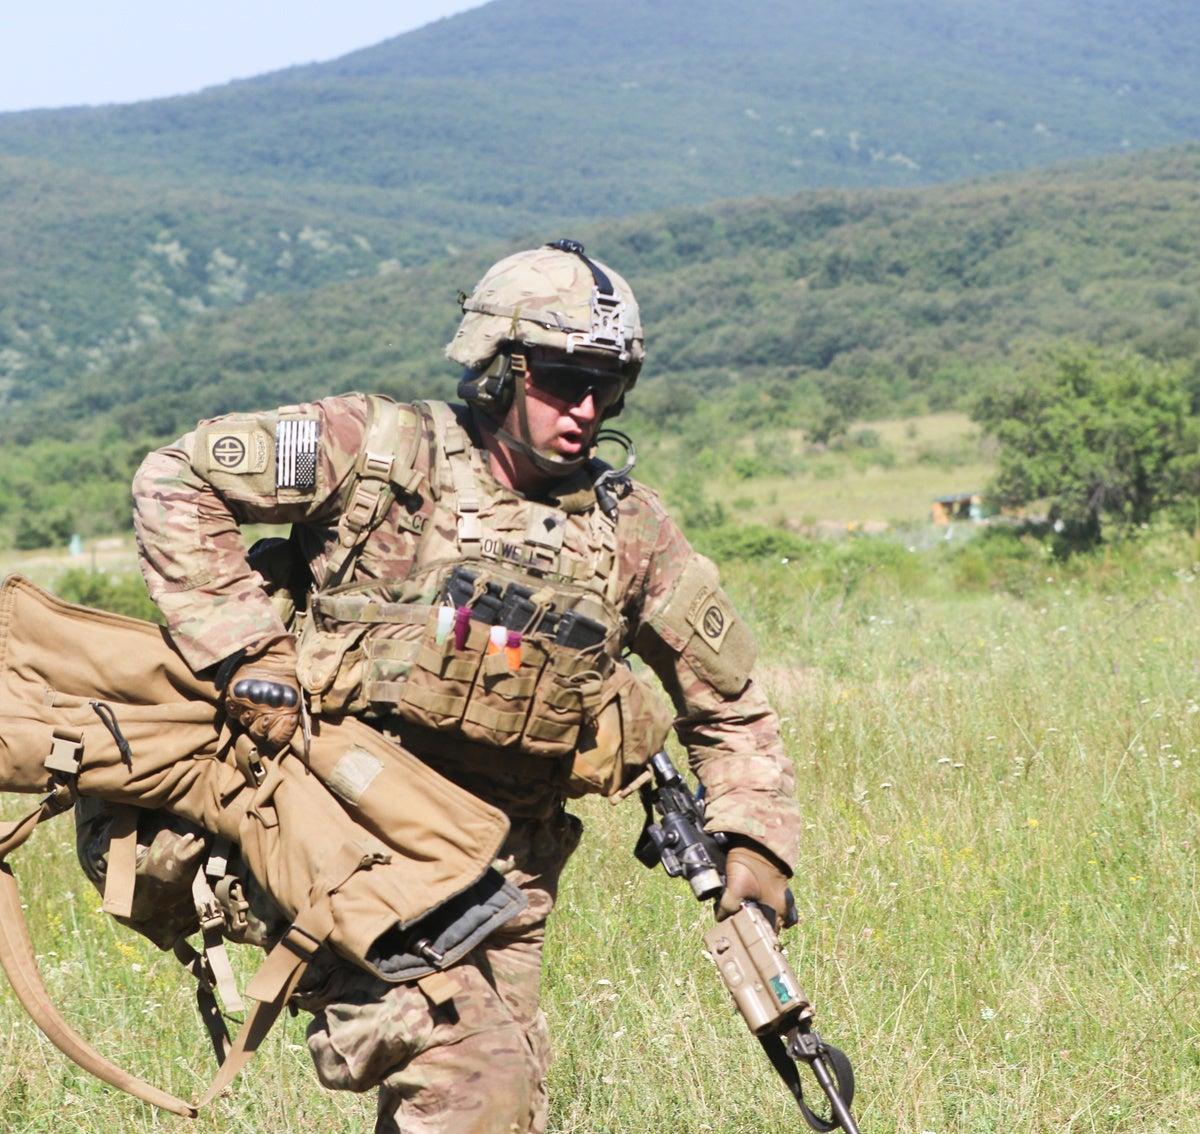 Ten Questions with Rod Lurie, Director of Operation Enduring Freedom film 'The Outpost'